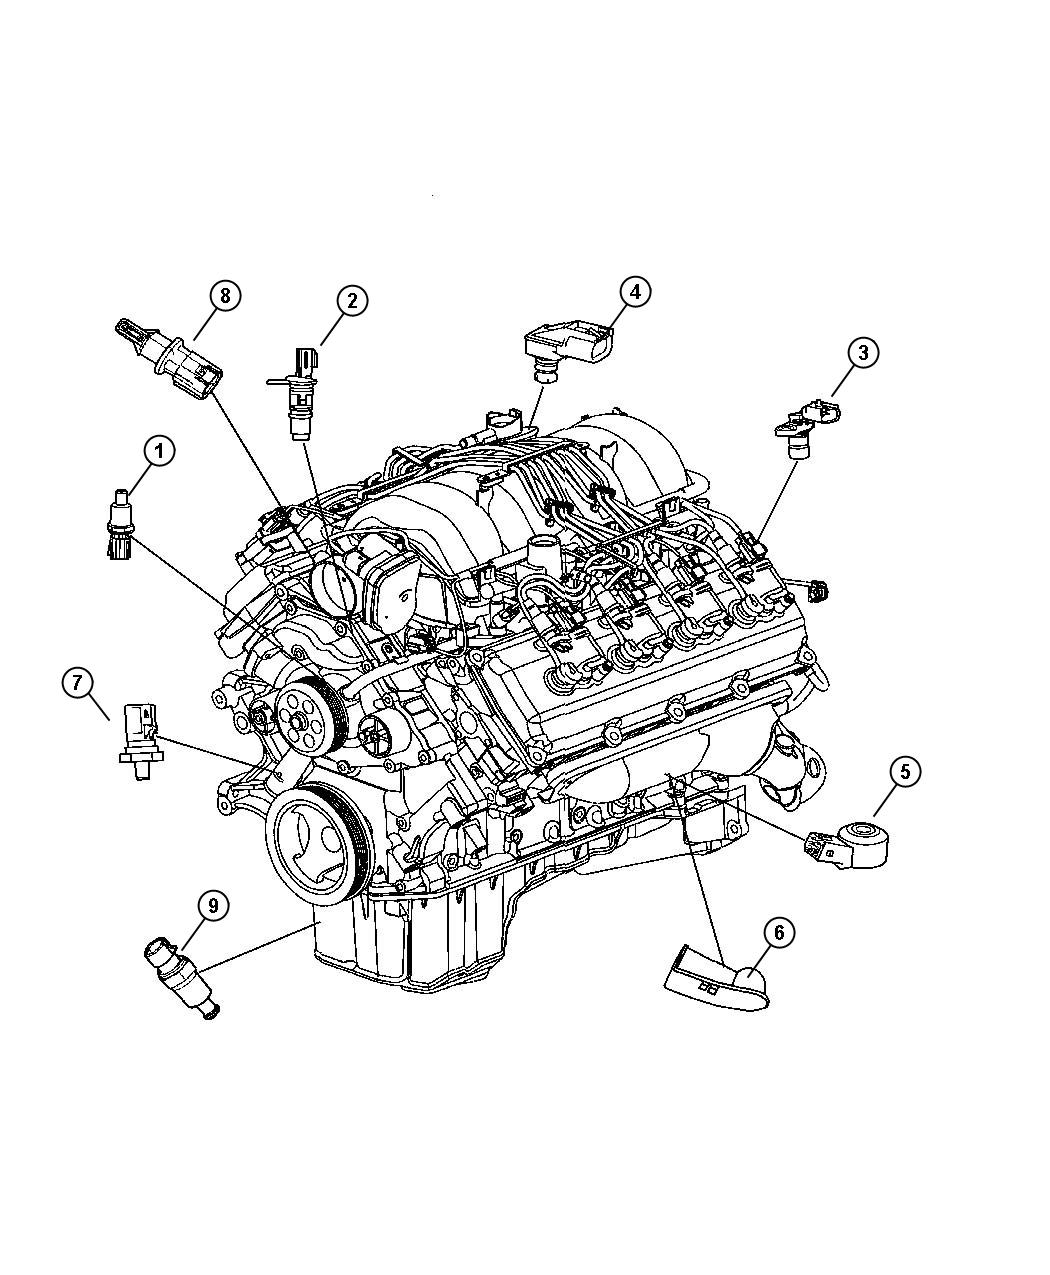 02 Chrysler 300 Wire Diagram moreover 5 7 Hemi Engine Diagram Part moreover RepairGuideContent together with Index cfm further Chrysler 2 4l Dohc Engine Diagram. on 2005 chrysler 300 timing belt